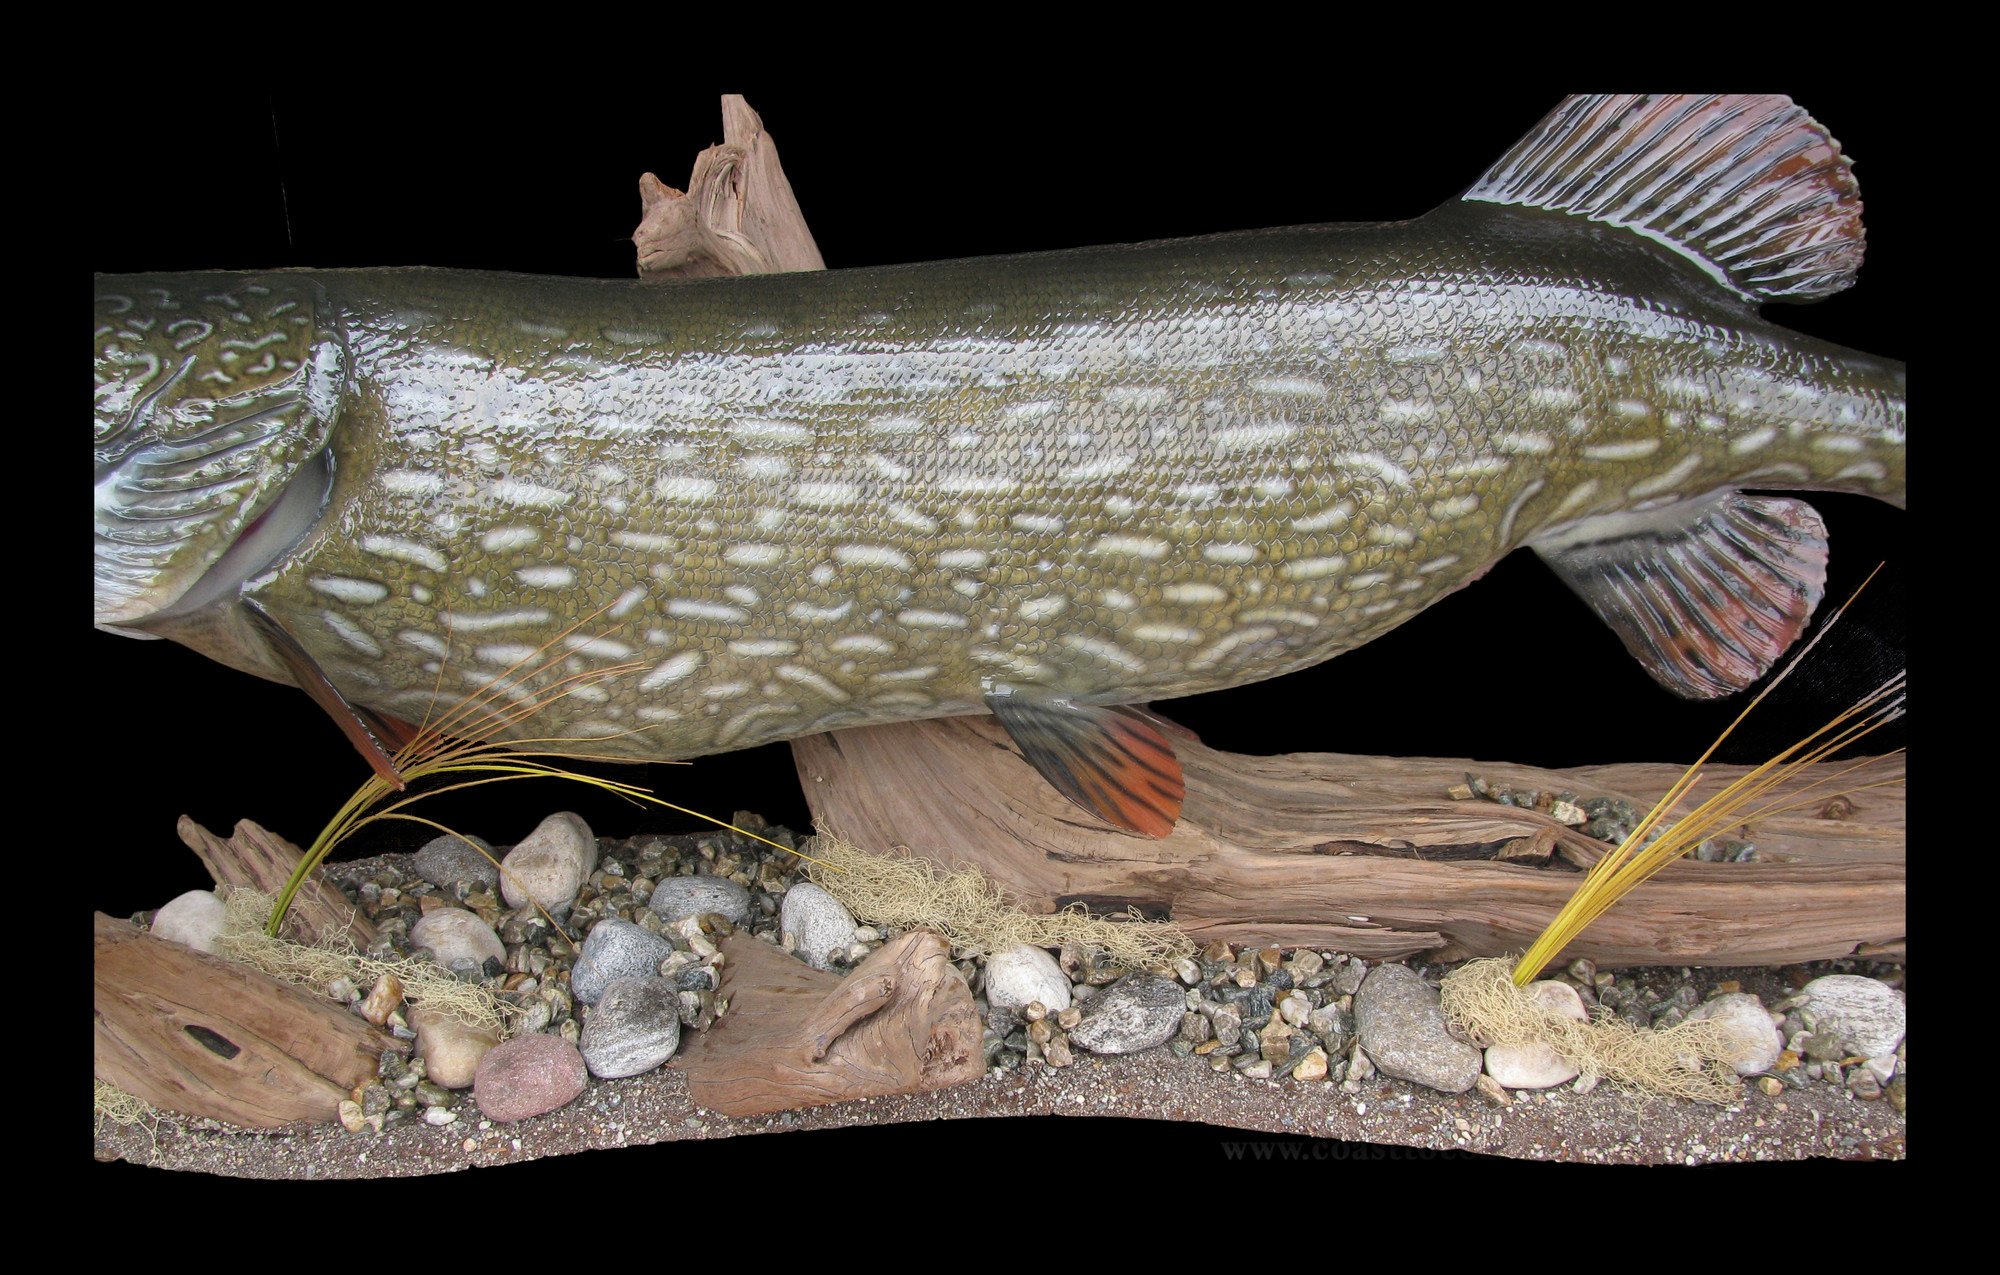 Northern pike fish mount and fish replicas coast to coast for Replica fish mounts